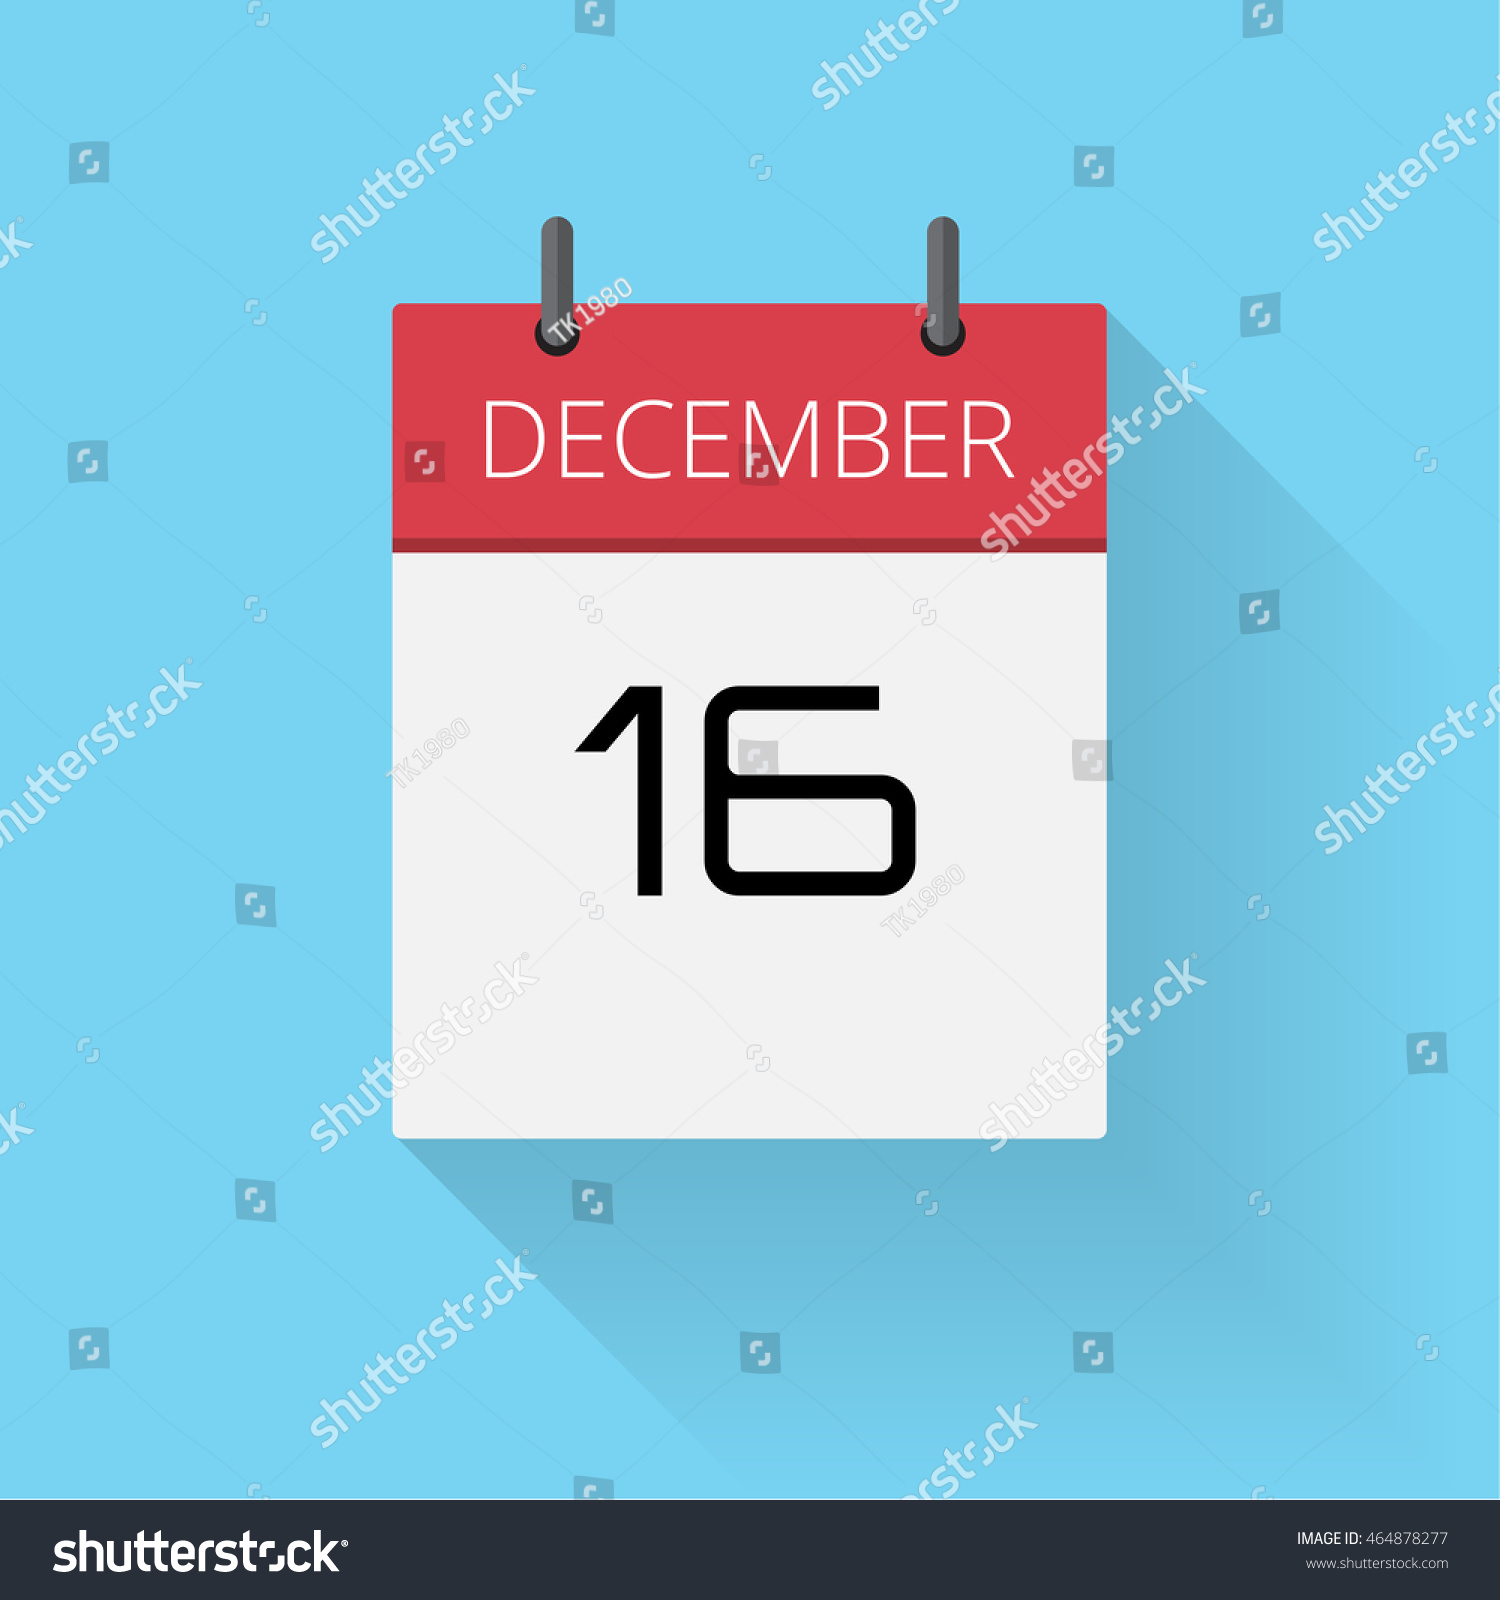 Daily Holiday Calendar.December 16 Daily Calendar Icon Date Stock Vector Royalty Free